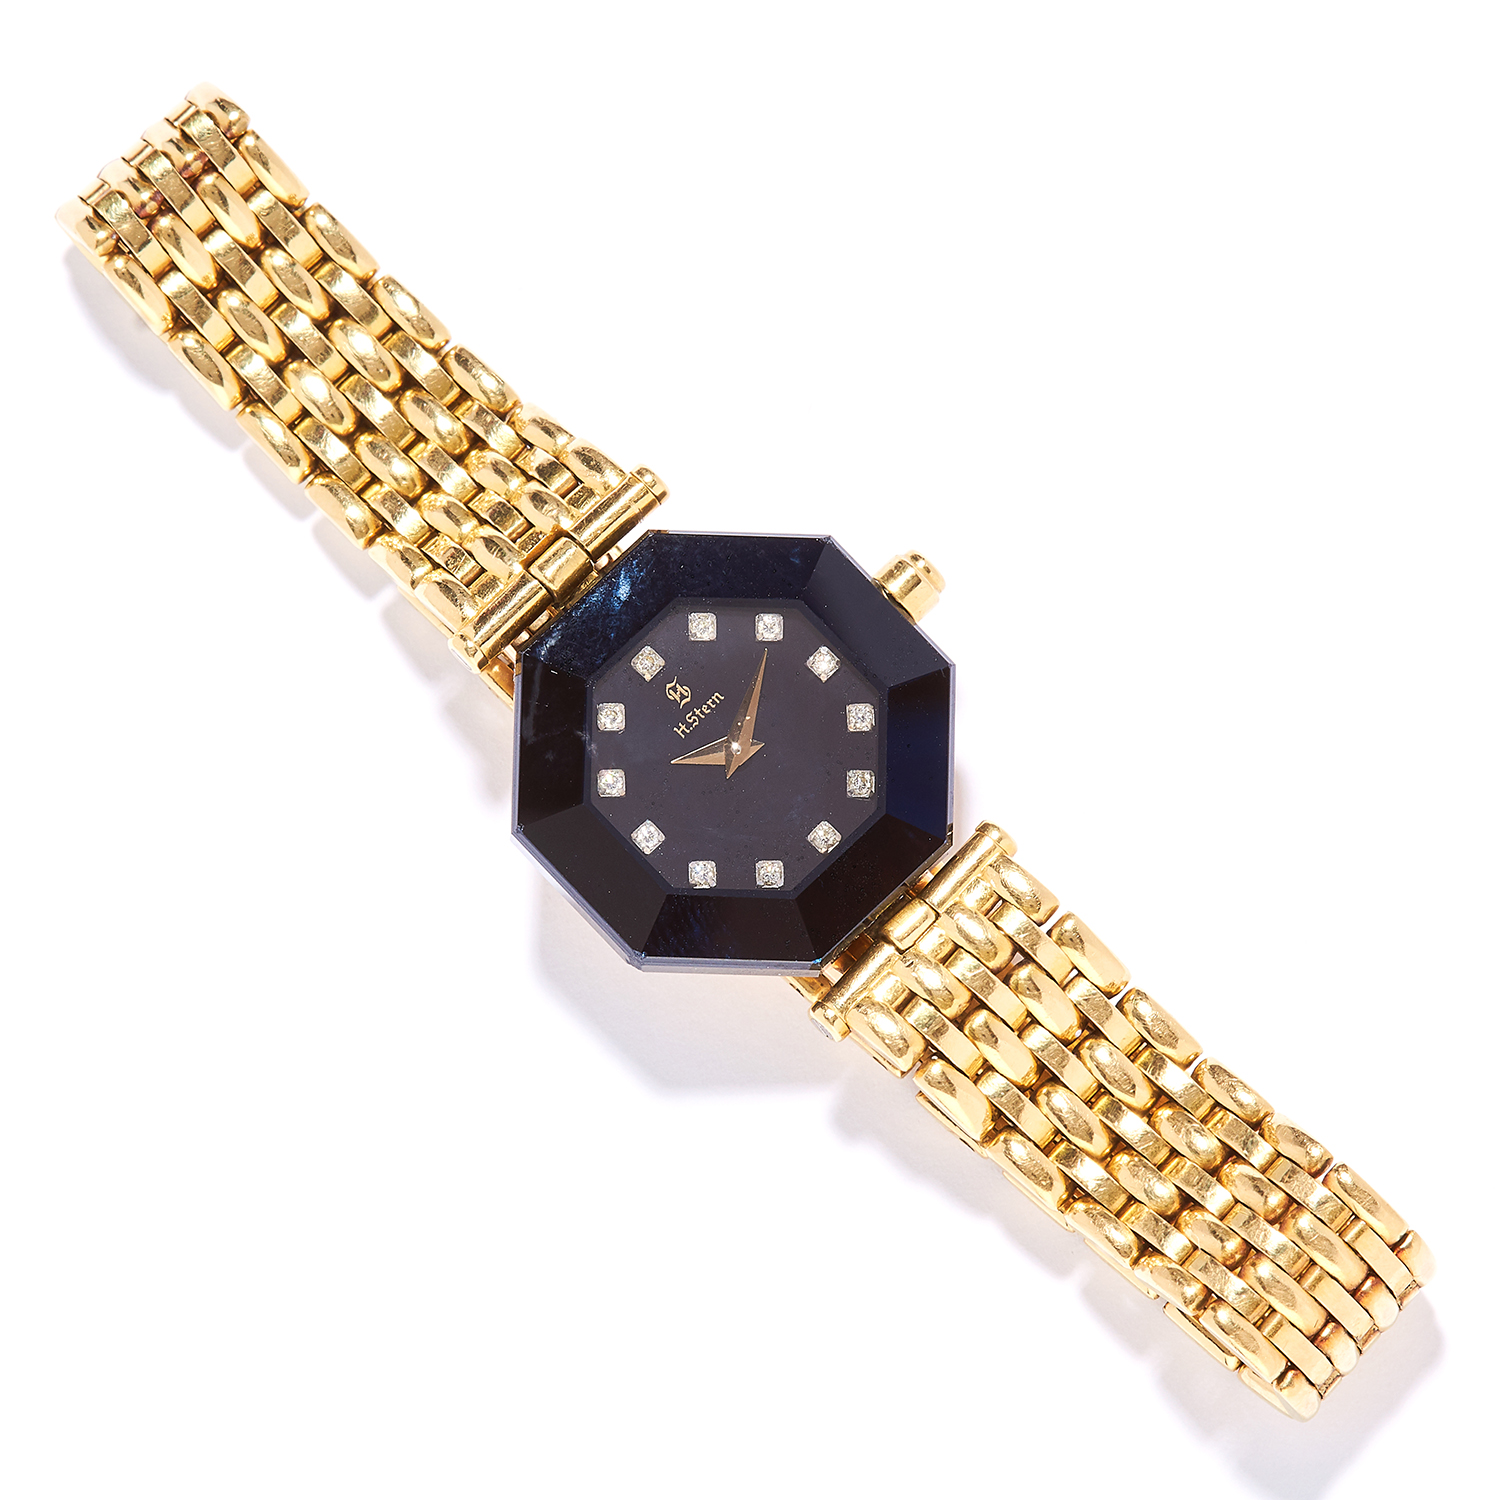 LADIES DIAMOND AND SAPPHIRE WRISTWATCH, H. STERN with sapphire and round cut diamond dial, with gold